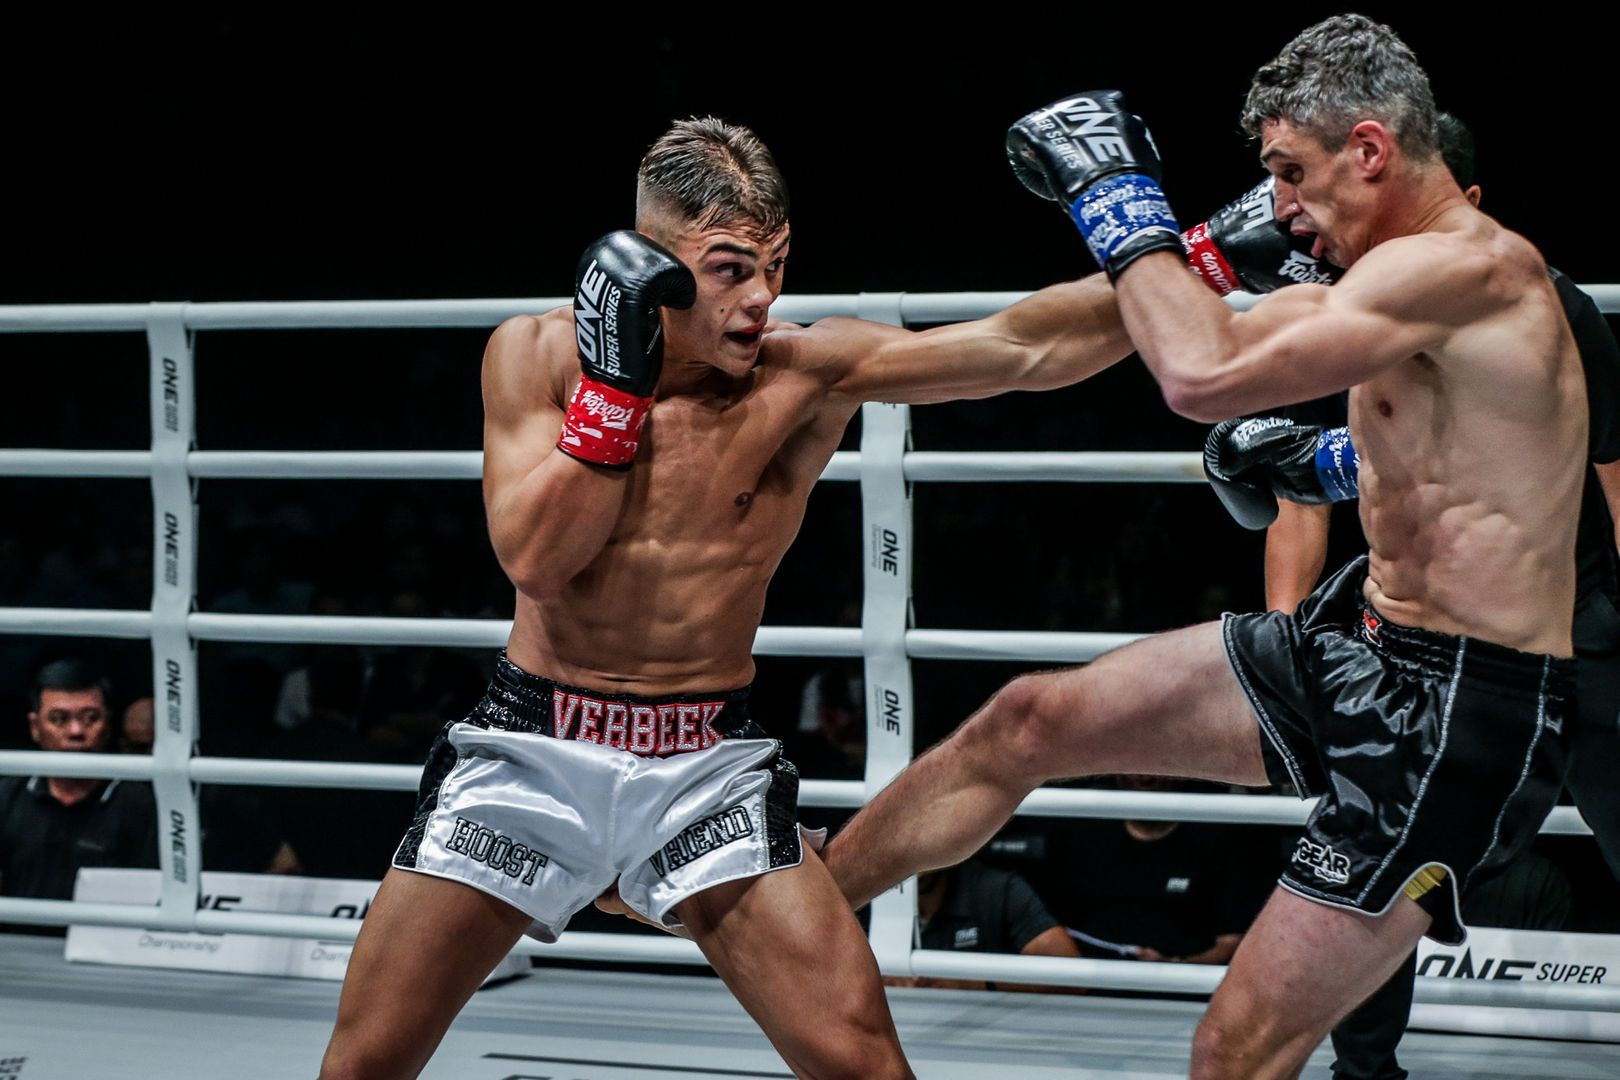 Santino Verbeek defeats Juan Cervantes ONE: IMMORTAL TRIUMPH